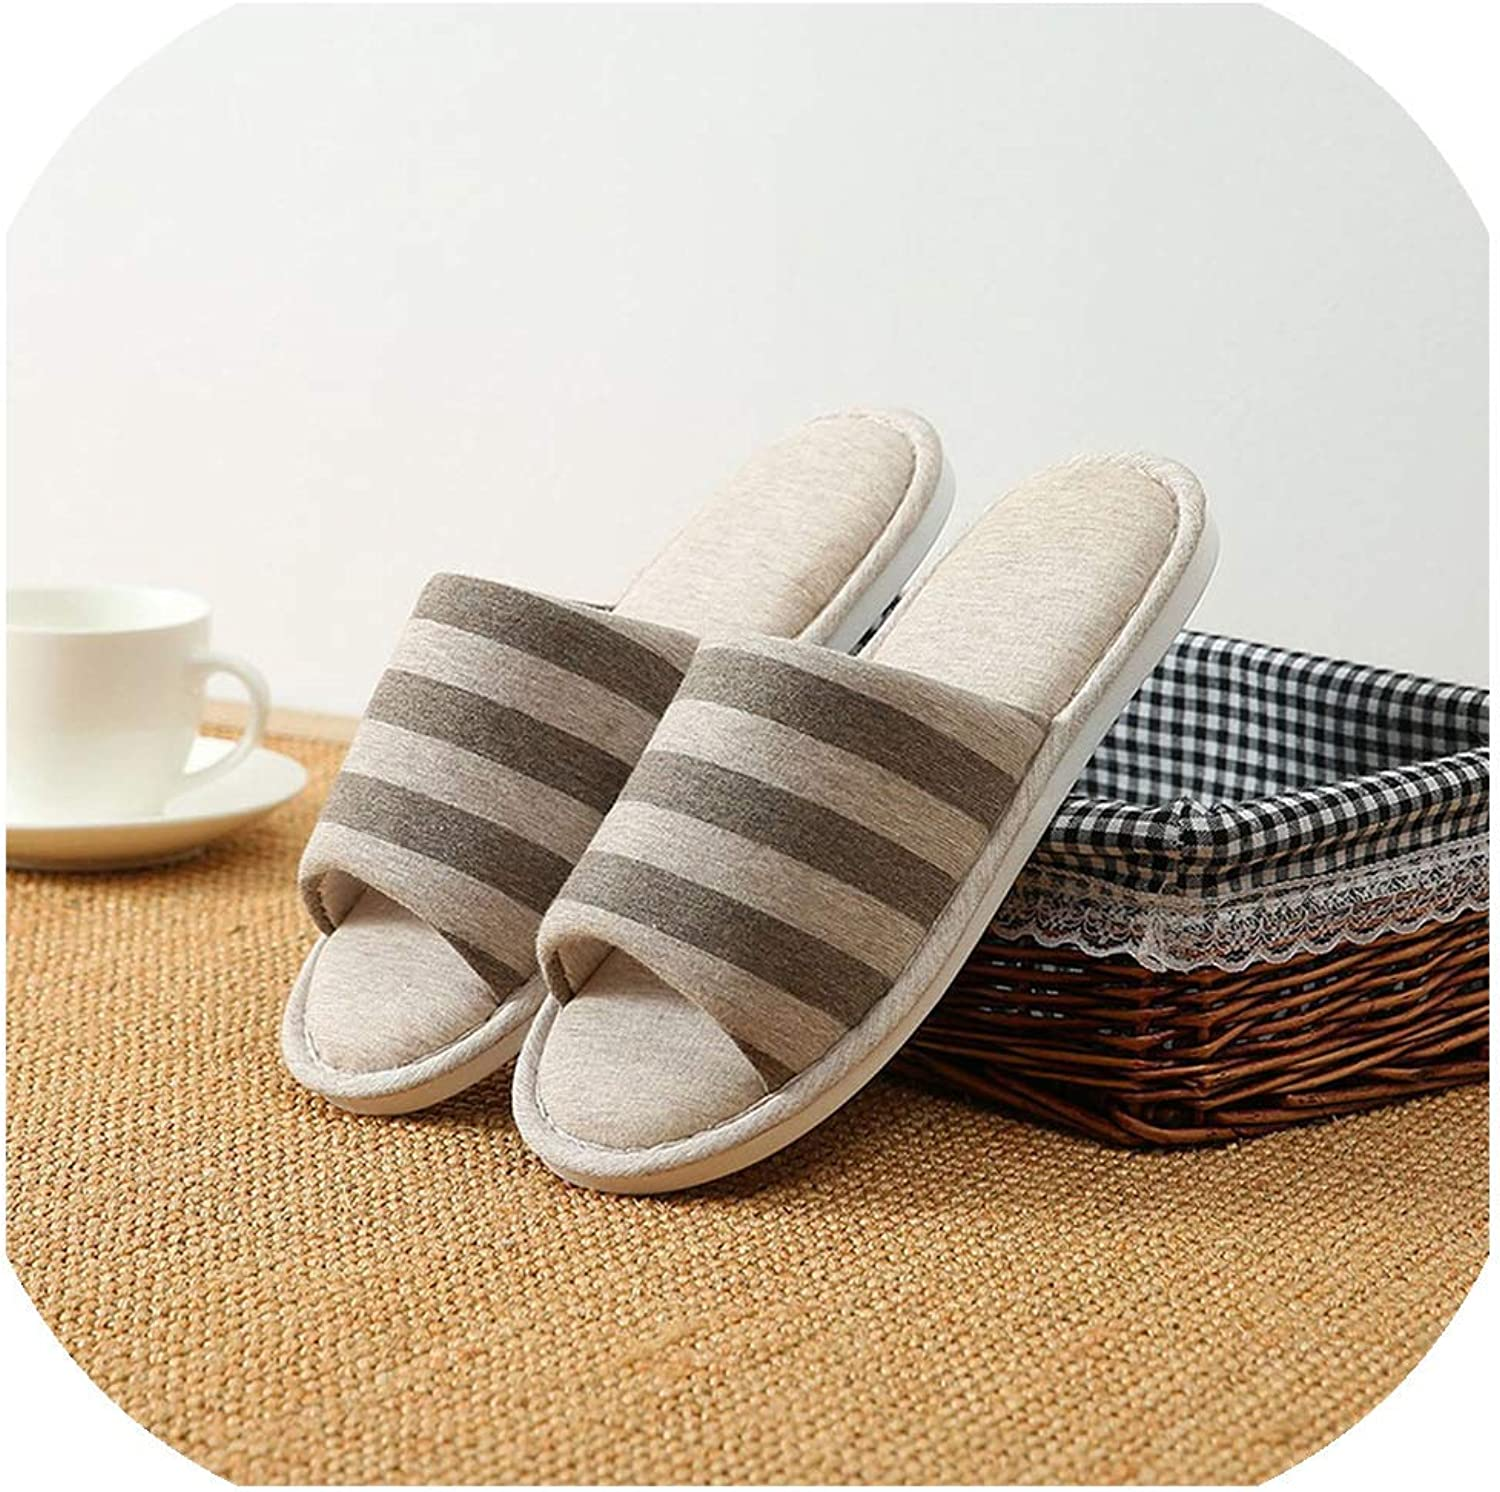 Slippers South Korea Household Slippers, Linen Slippers, Men's and Women's Antiskid Indoor Wooden Floor Slippers